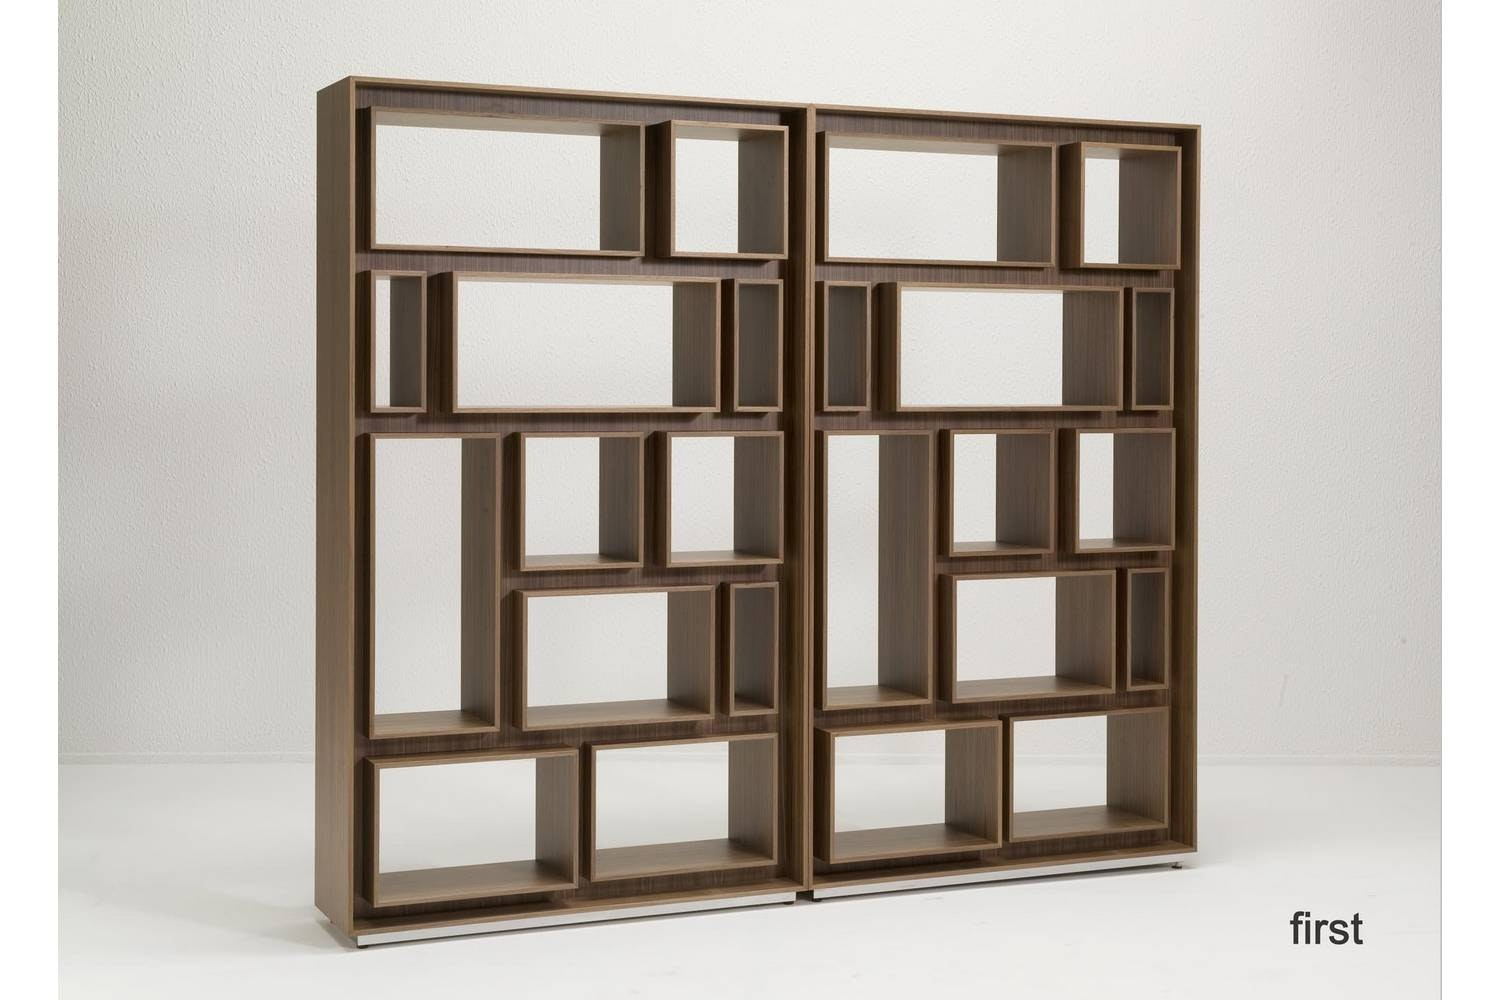 First Bookcase by G. Carollo for Porada